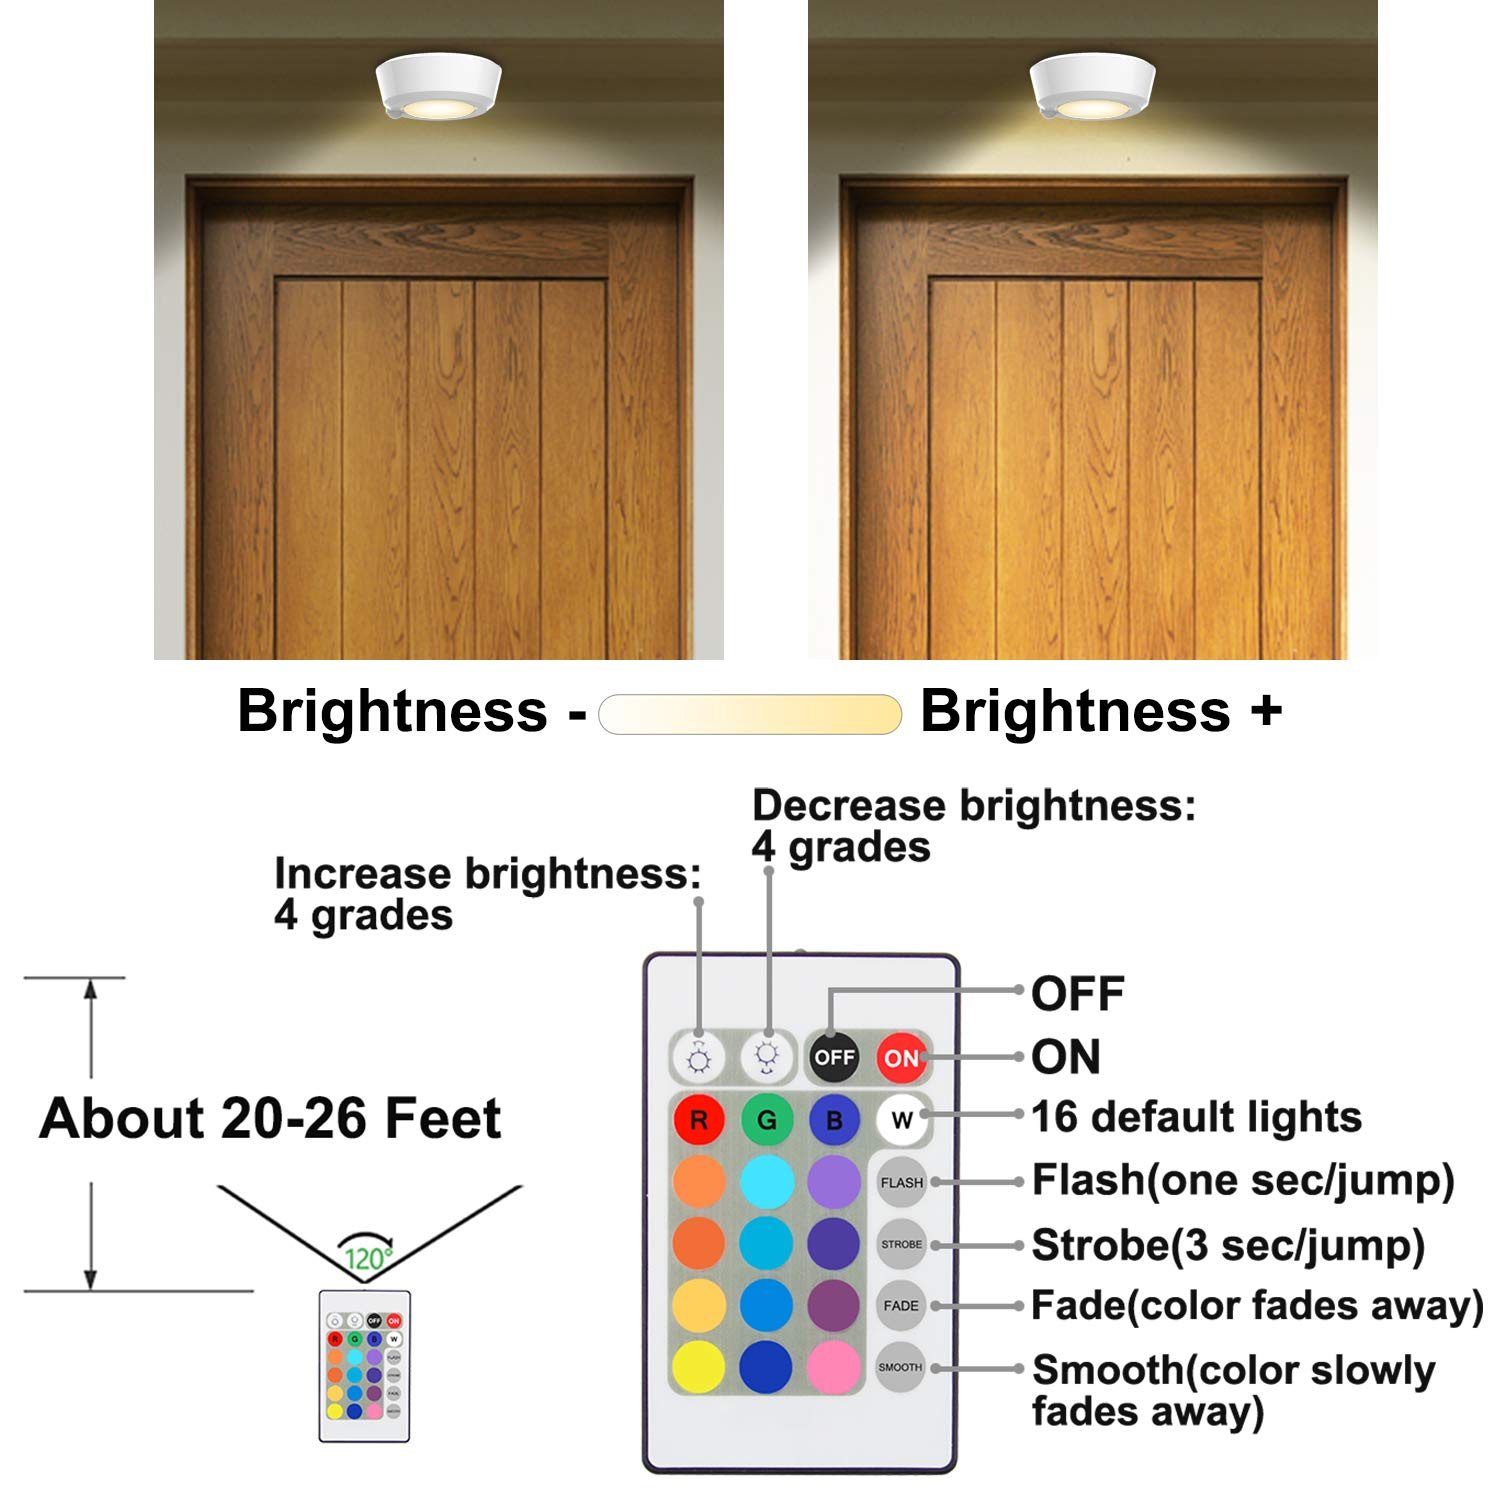 Luxsway Led Ceiling Light Remote Control Battery Operated Corridor Night Lightning 16 Color 4 Modes 5 67 Stick Light For Bookshelf Porch Hallway Stair Kitchen Wardrobe 2pack